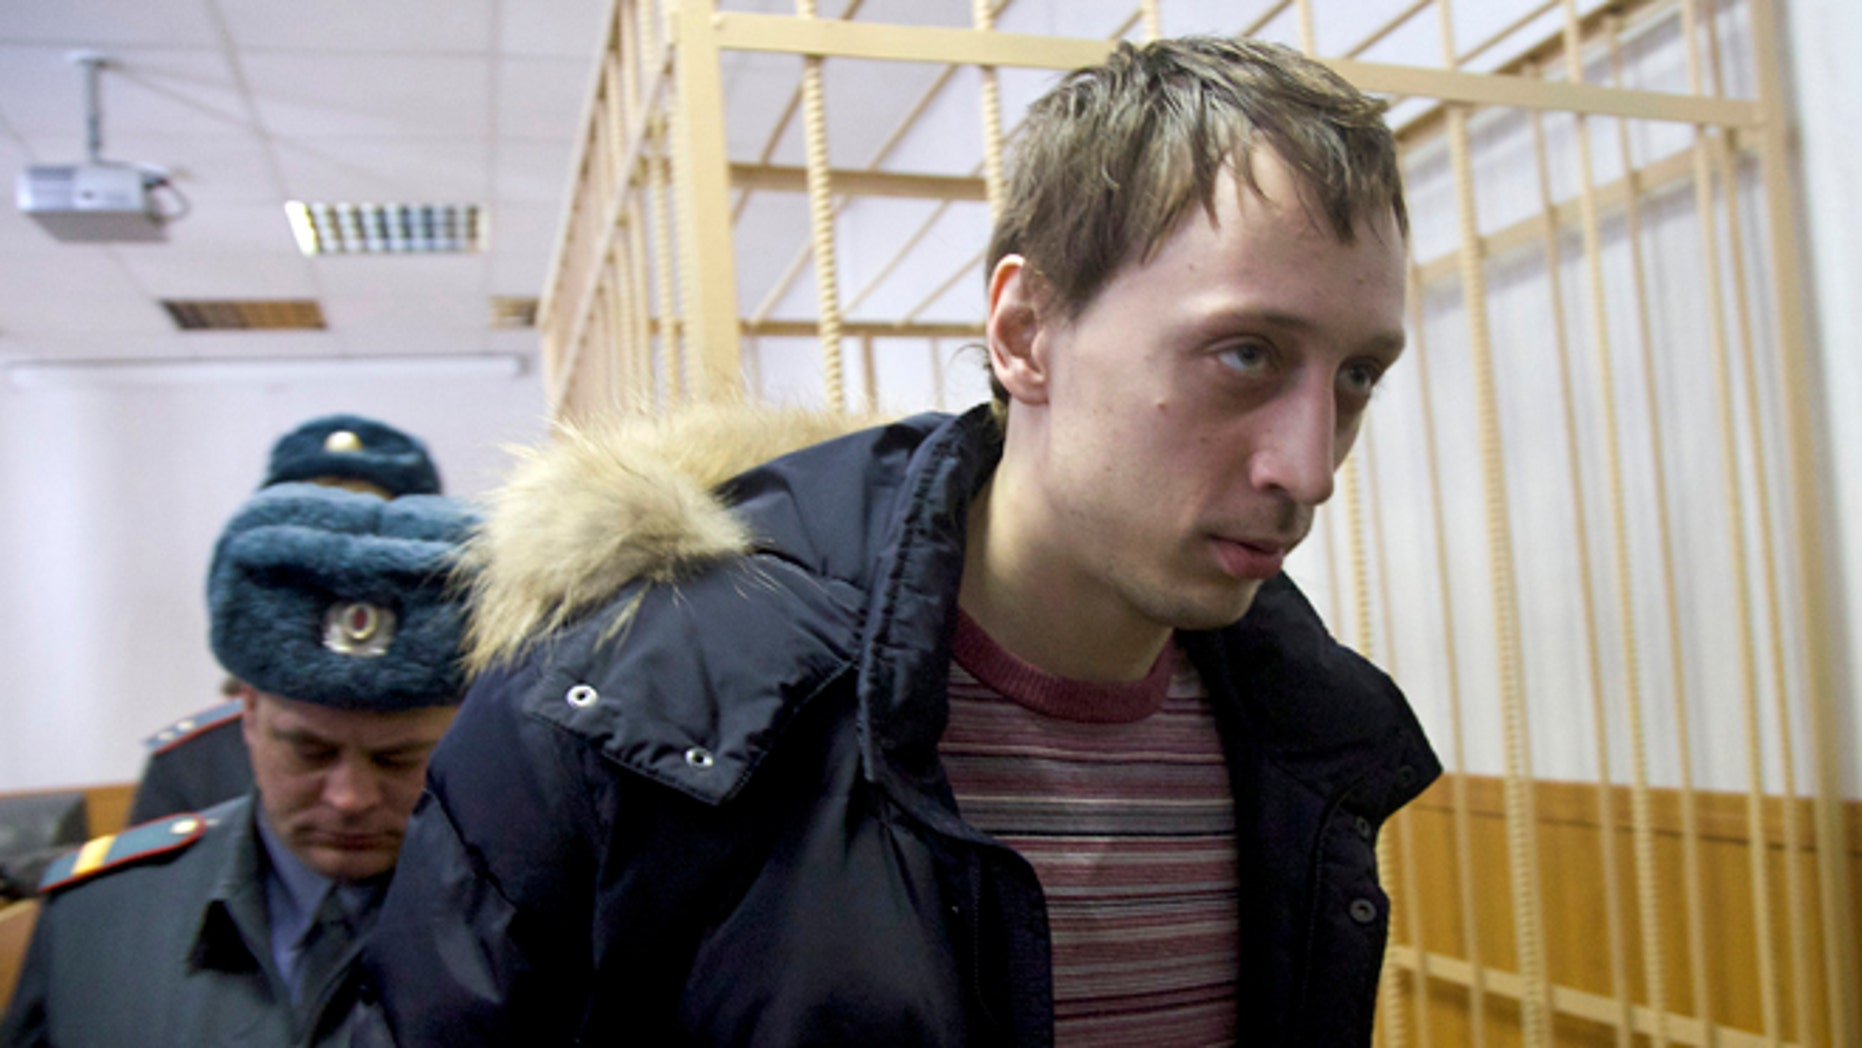 March 7, 2013: Pavel Dmitrichenko, foreground, is escorted out of a courtroom in Moscow, Russia. The star dancer accused of masterminding the attack on the Bolshoi ballet chief acknowledged Thursday that he gave the go-ahead for the attack, but told a Moscow court that he did not order anyone to throw acid on the artistic director's face.